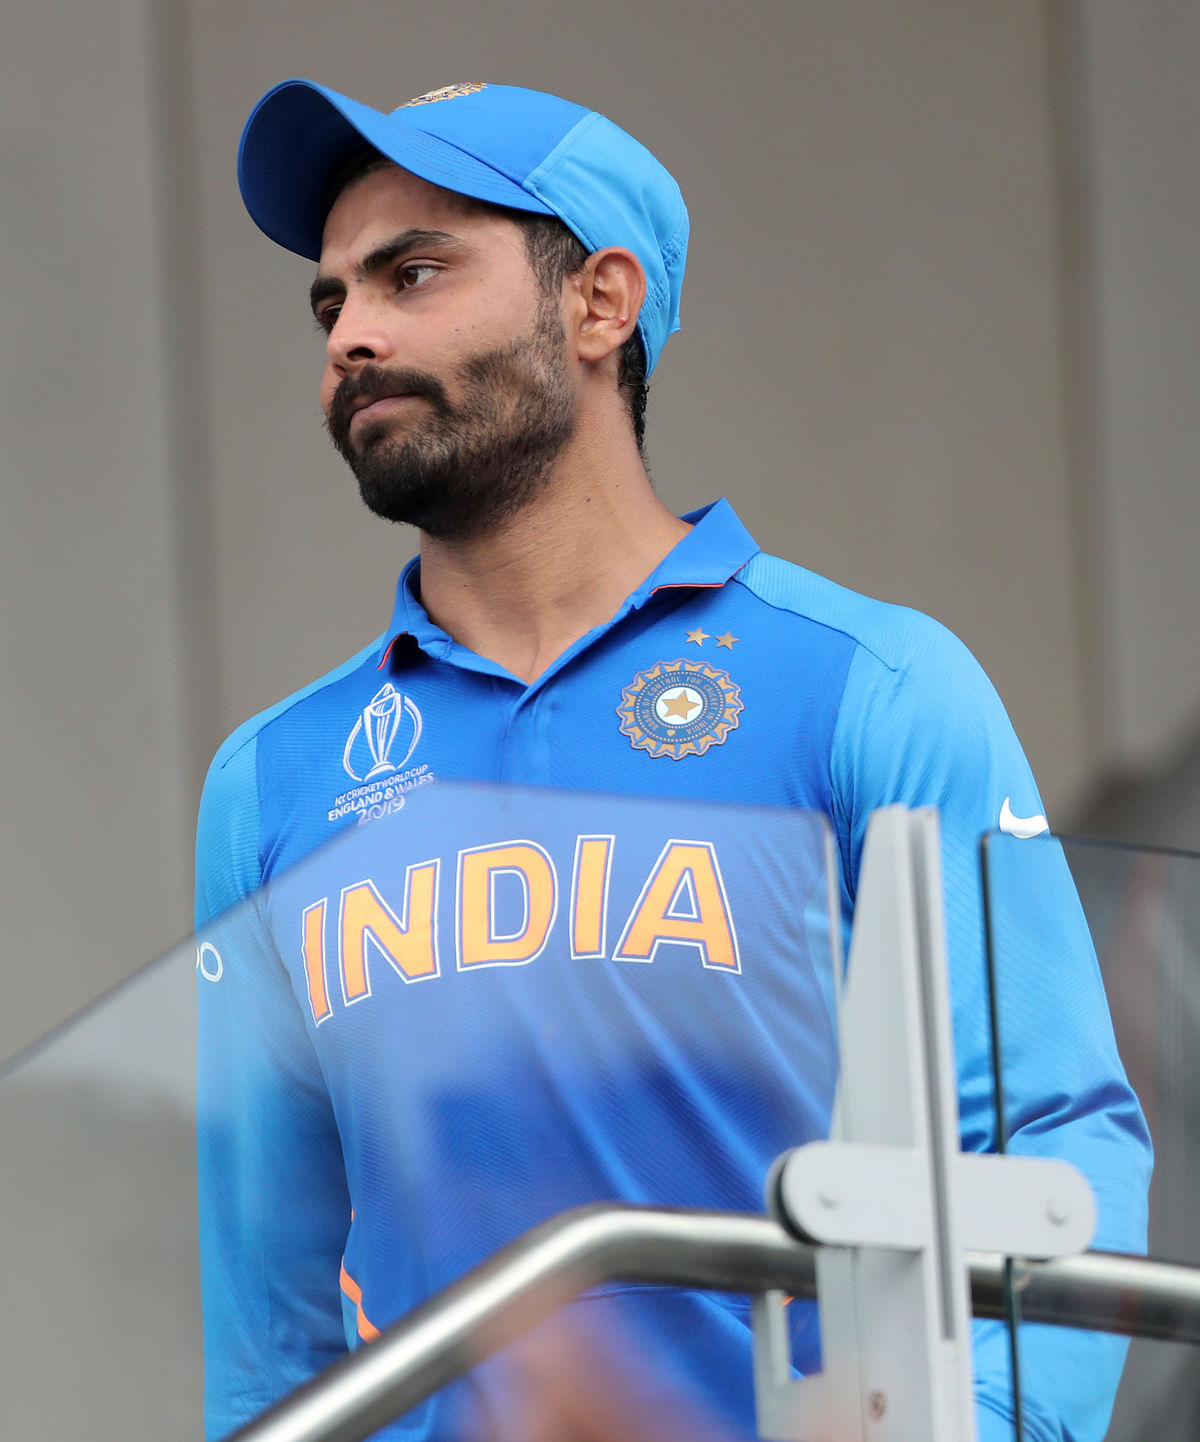 India's Ravindra Jadeja reacts after their loss in the Cricket World Cup semi-final match against New Zealand at Old Trafford in Manchester, England, Wednesday, July 10, 2019.